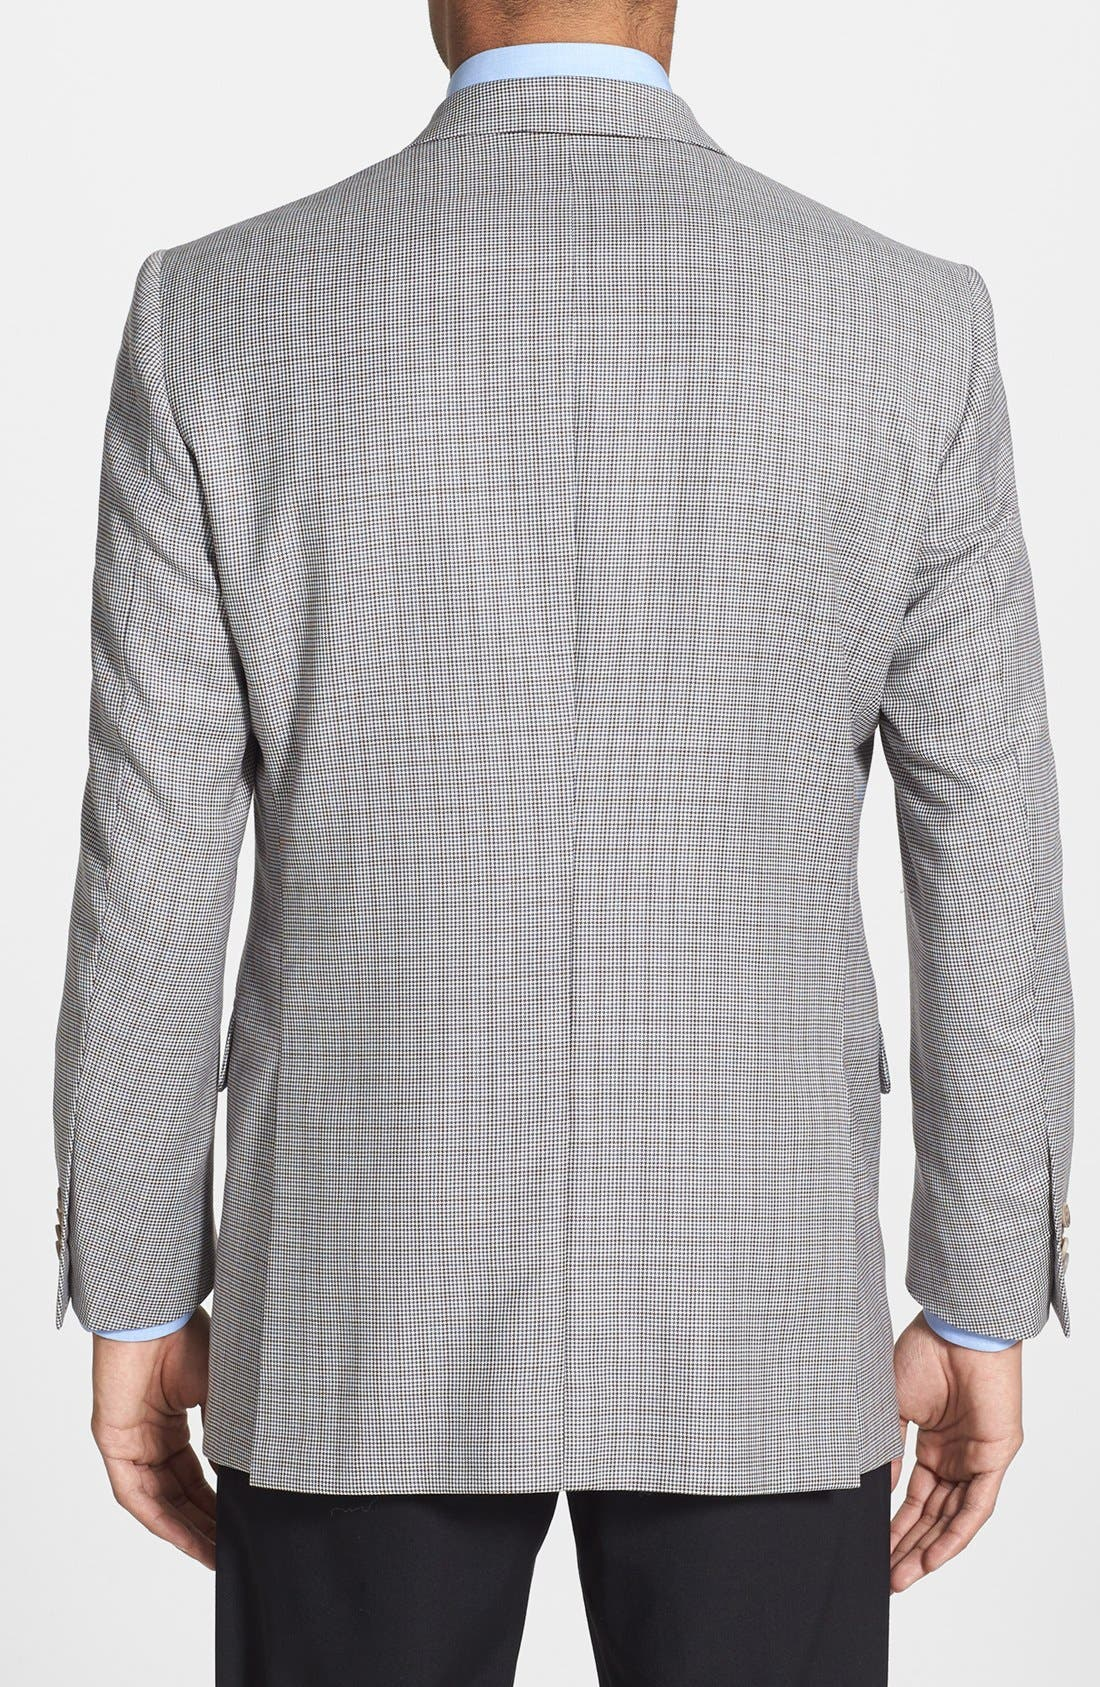 Alternate Image 2  - Peter Millar Classic Fit Check Sportcoat